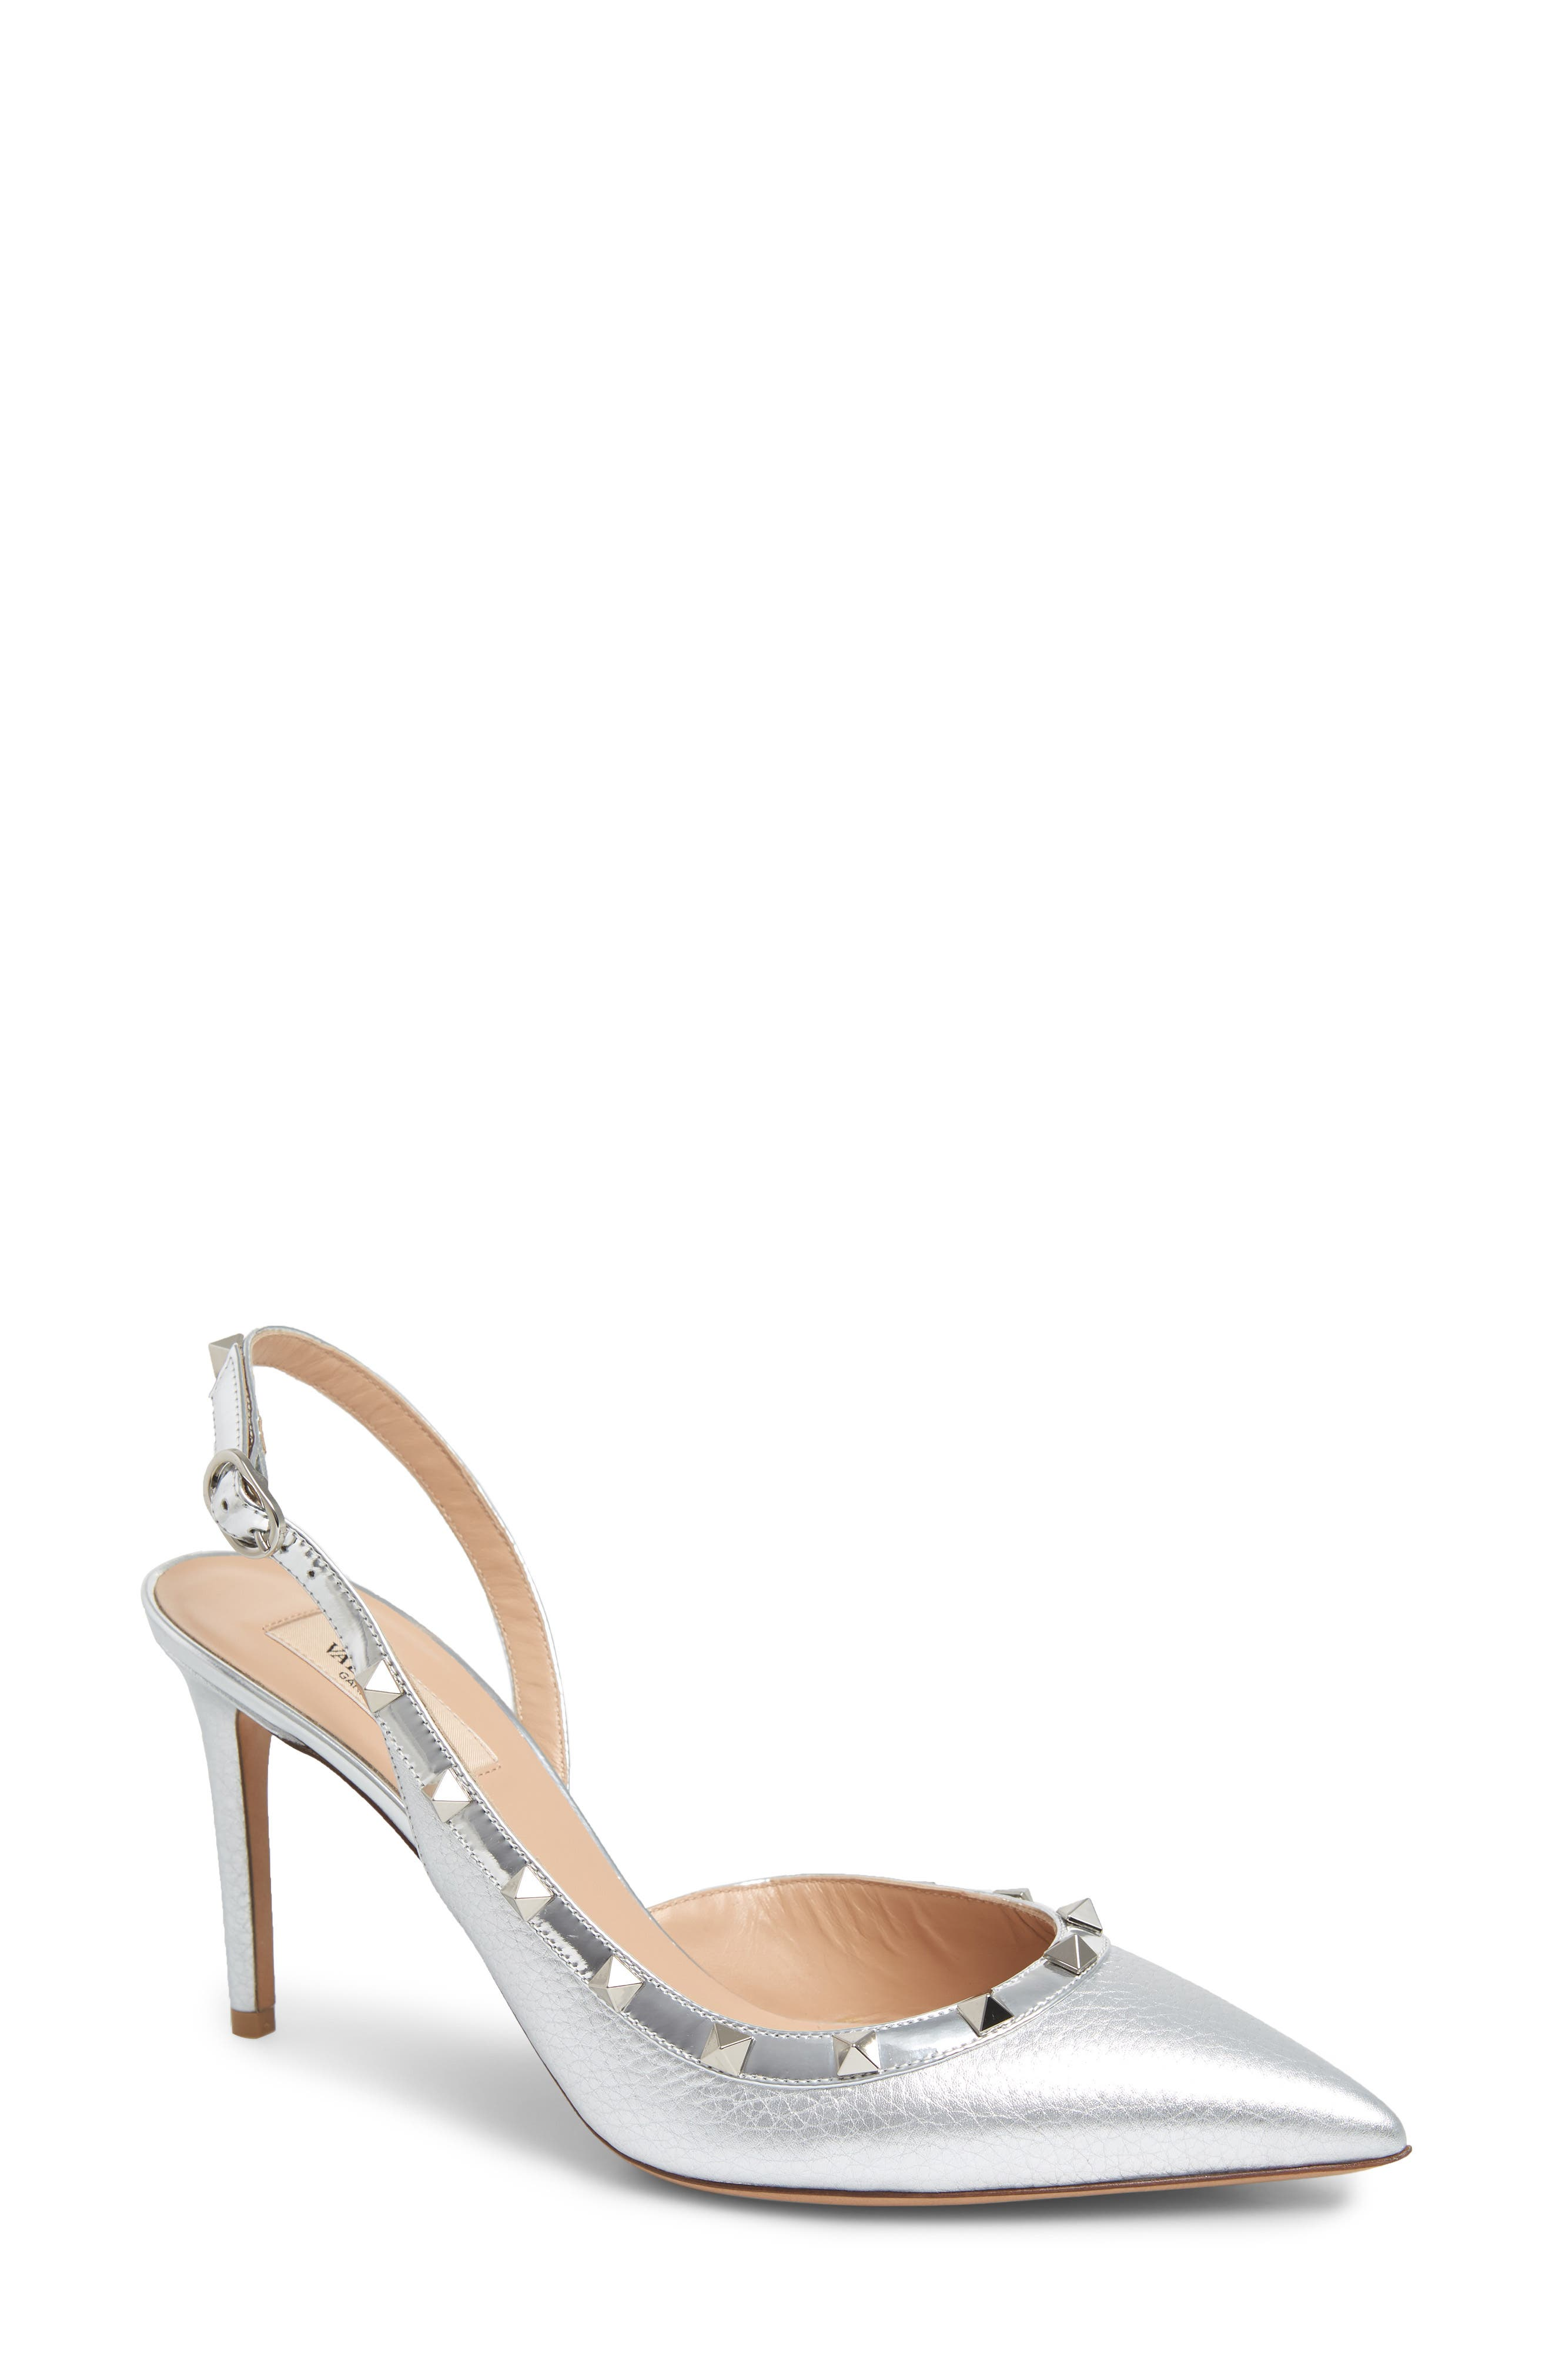 Rockstud Slingback Pump,                         Main,                         color, SILVER